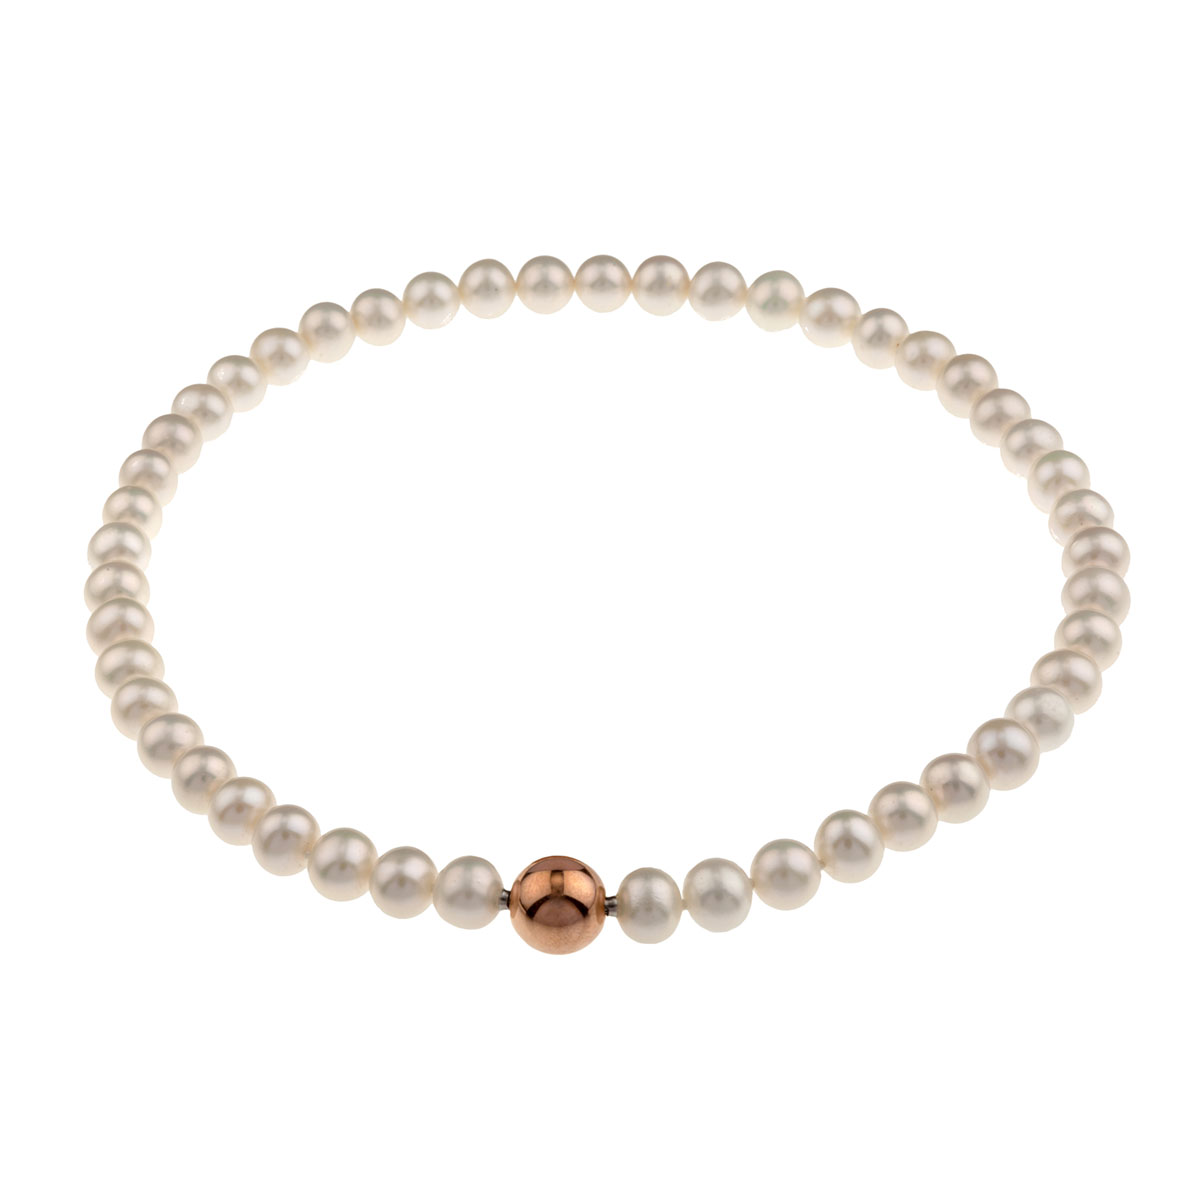 Pearl Necklace Clasps: Small Rose Gold Clasp